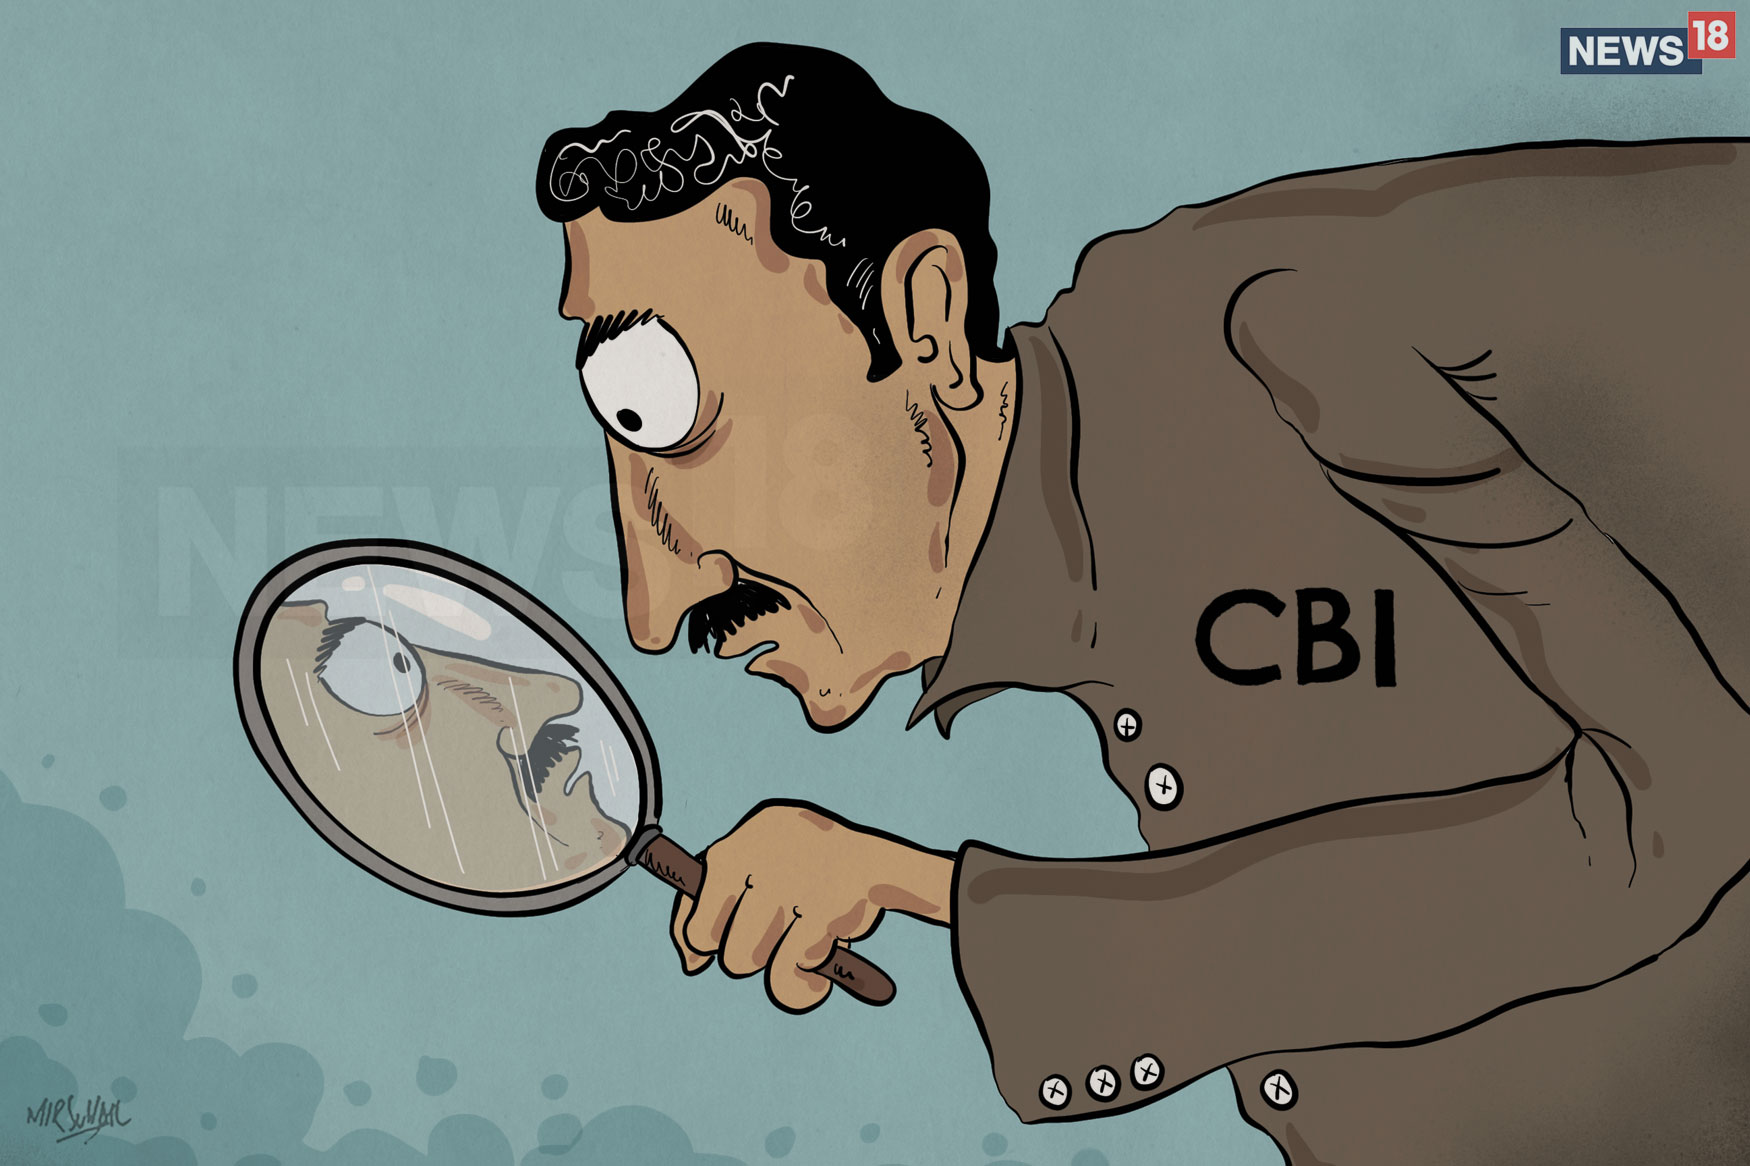 What fuelled the feud in CBI?